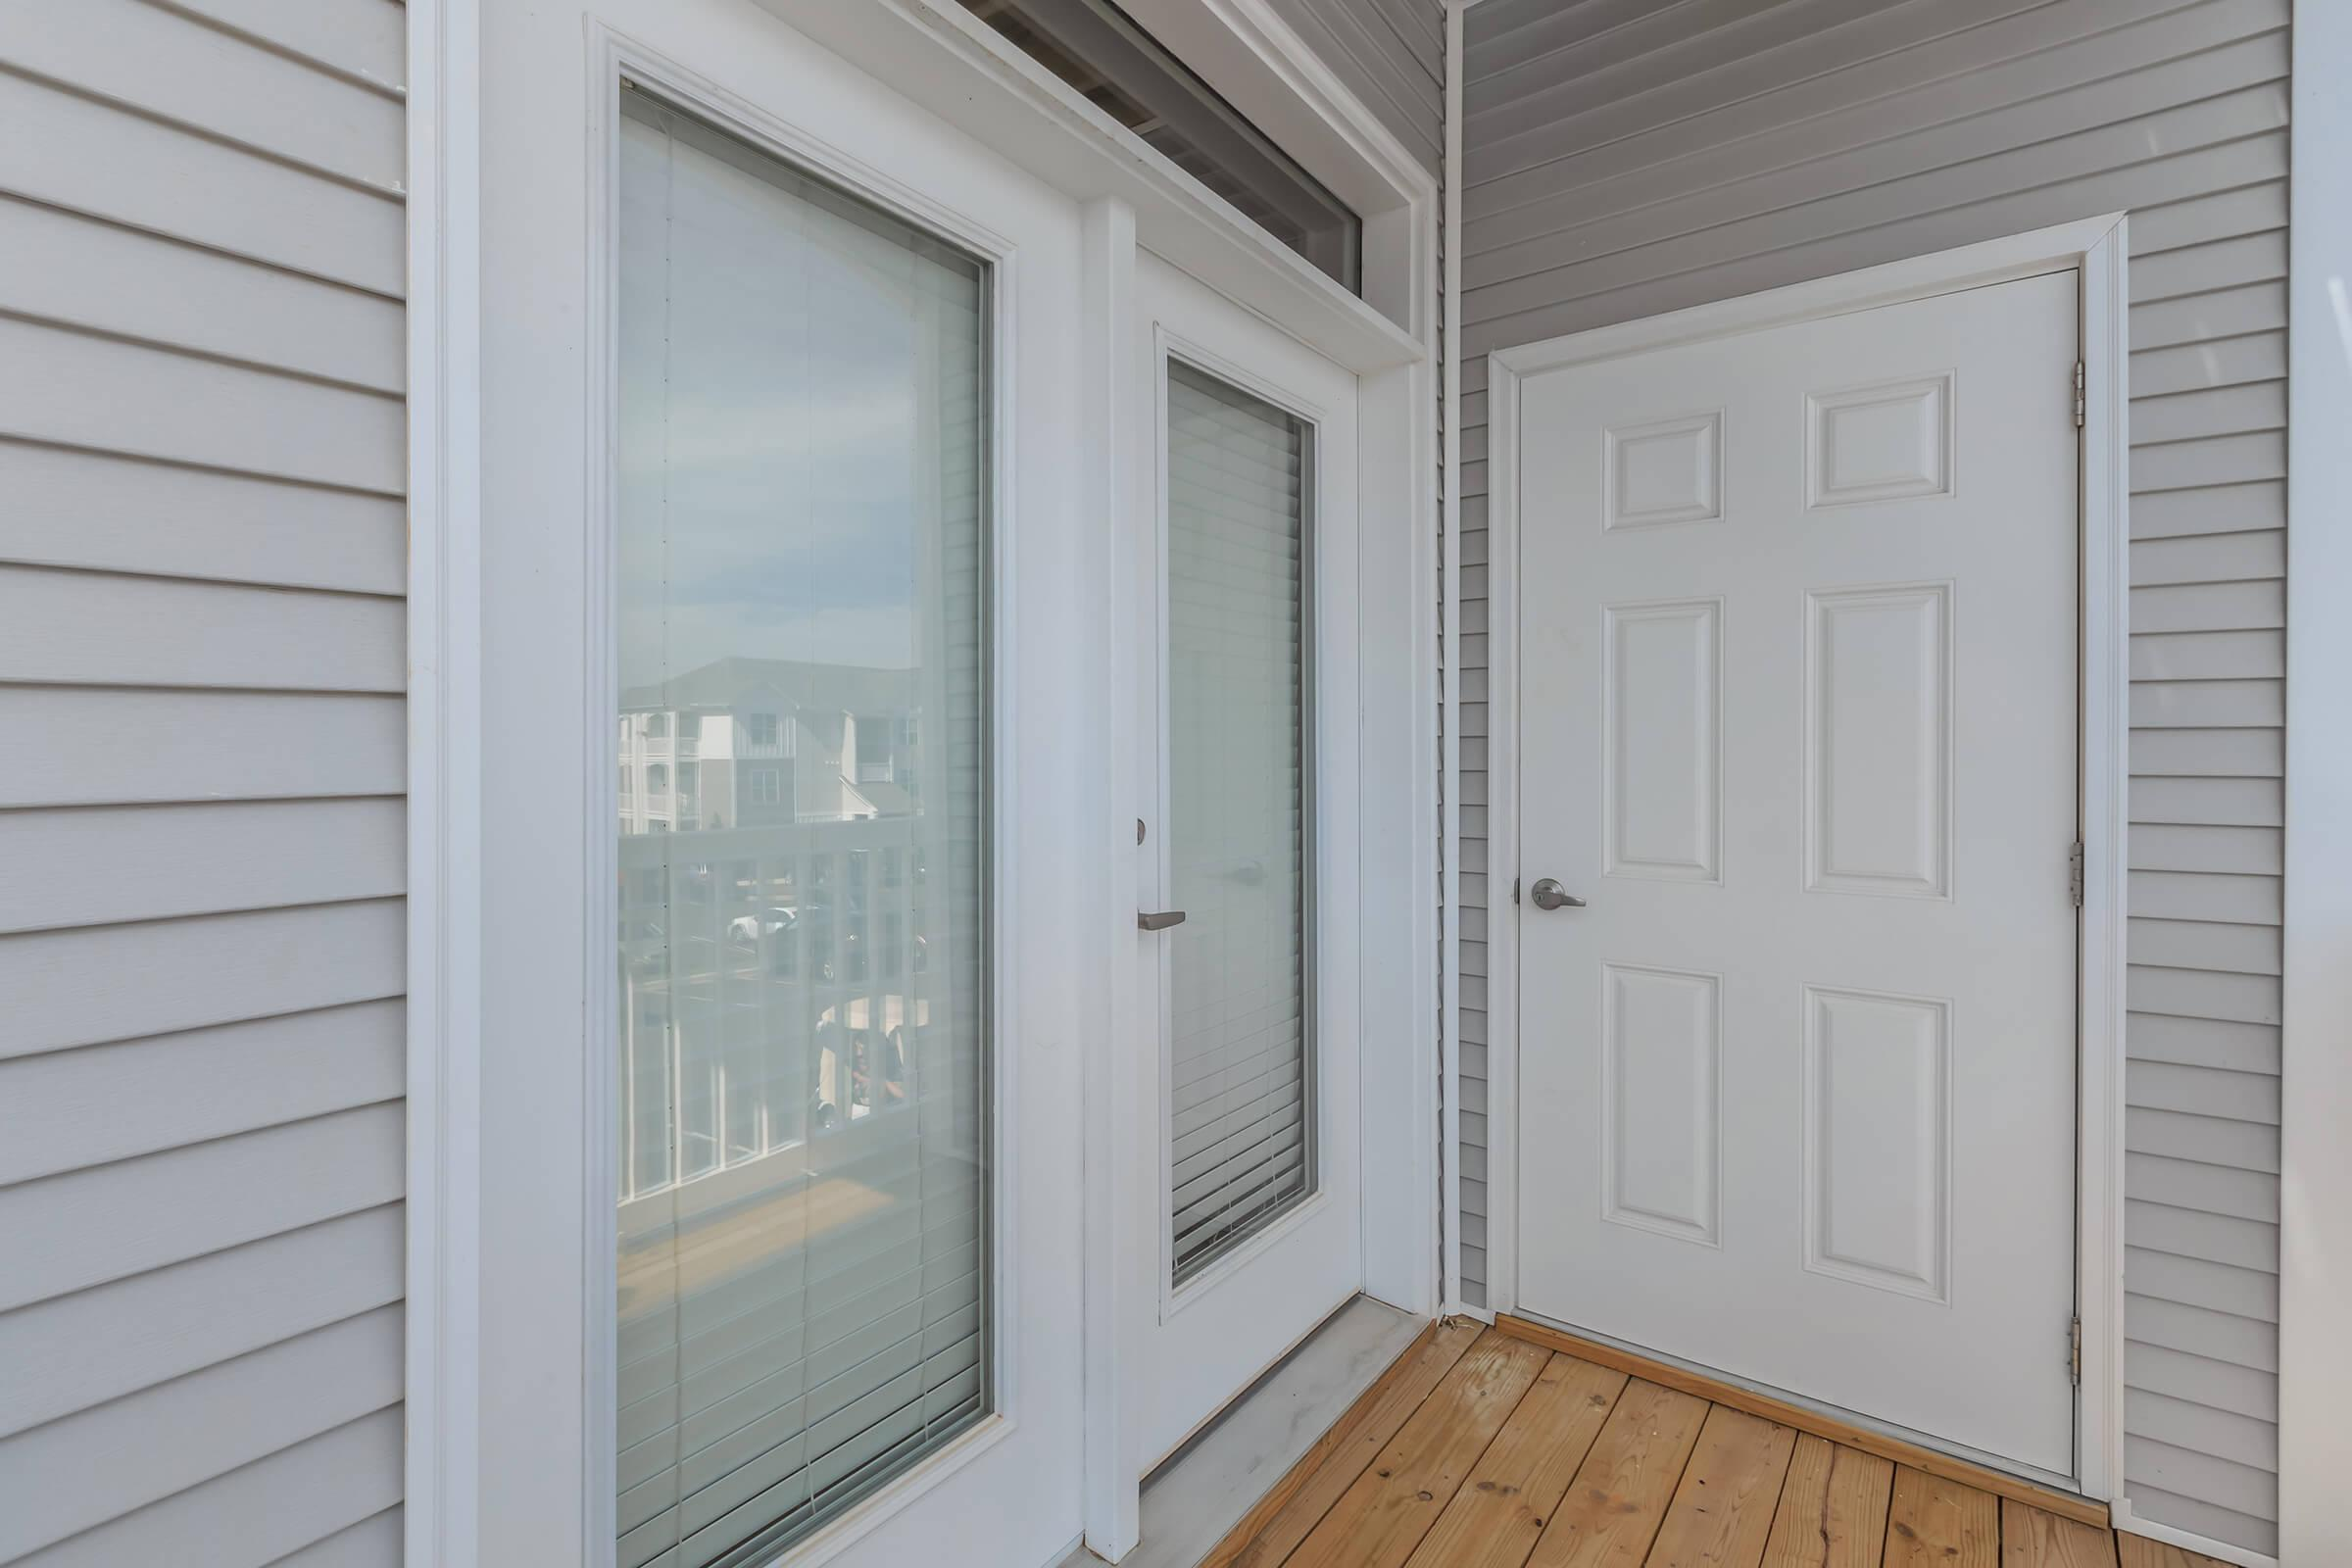 a white door next to a window